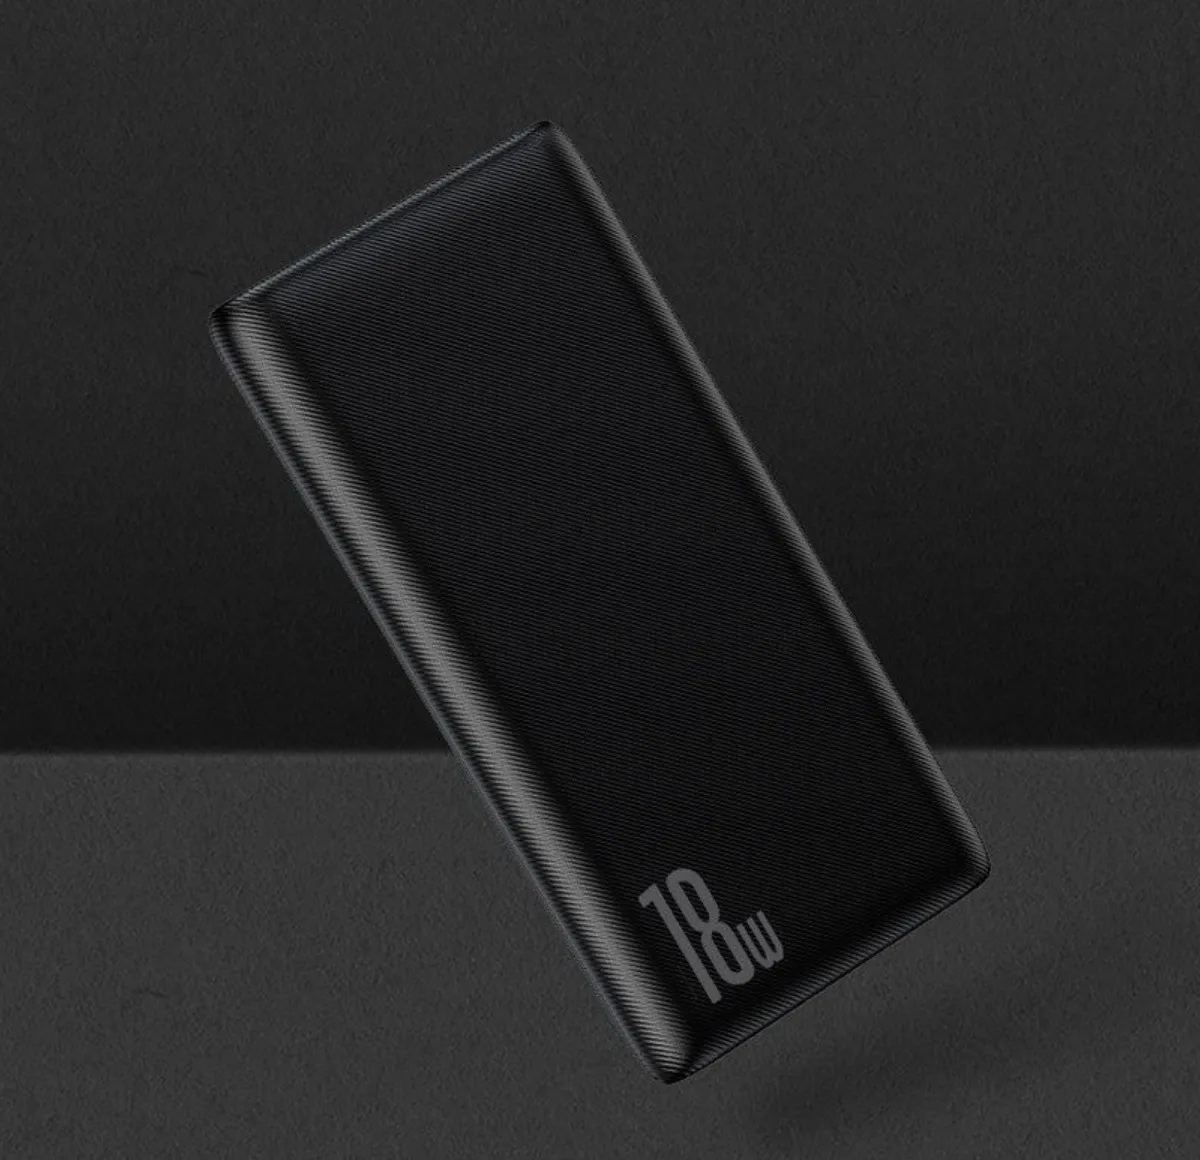 Carregador Portátil Baseus Power bank Bipow 10000mAh PD+QC 18w Preto